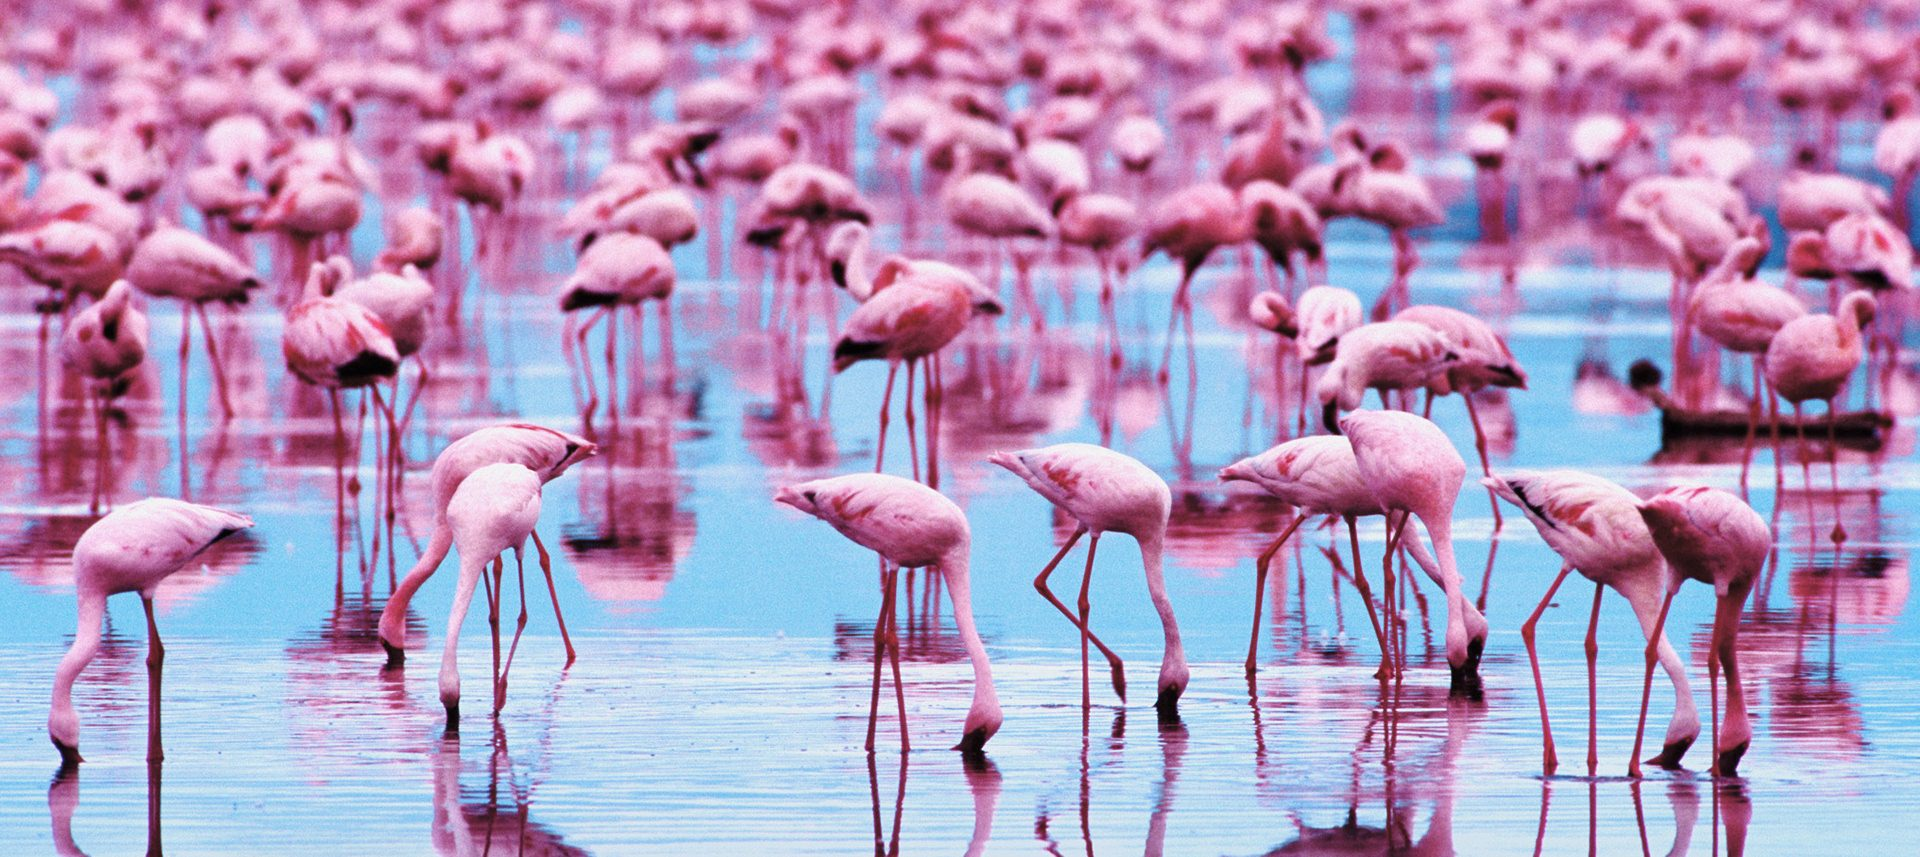 Flamingo Wallpaper Full Hd Pictures